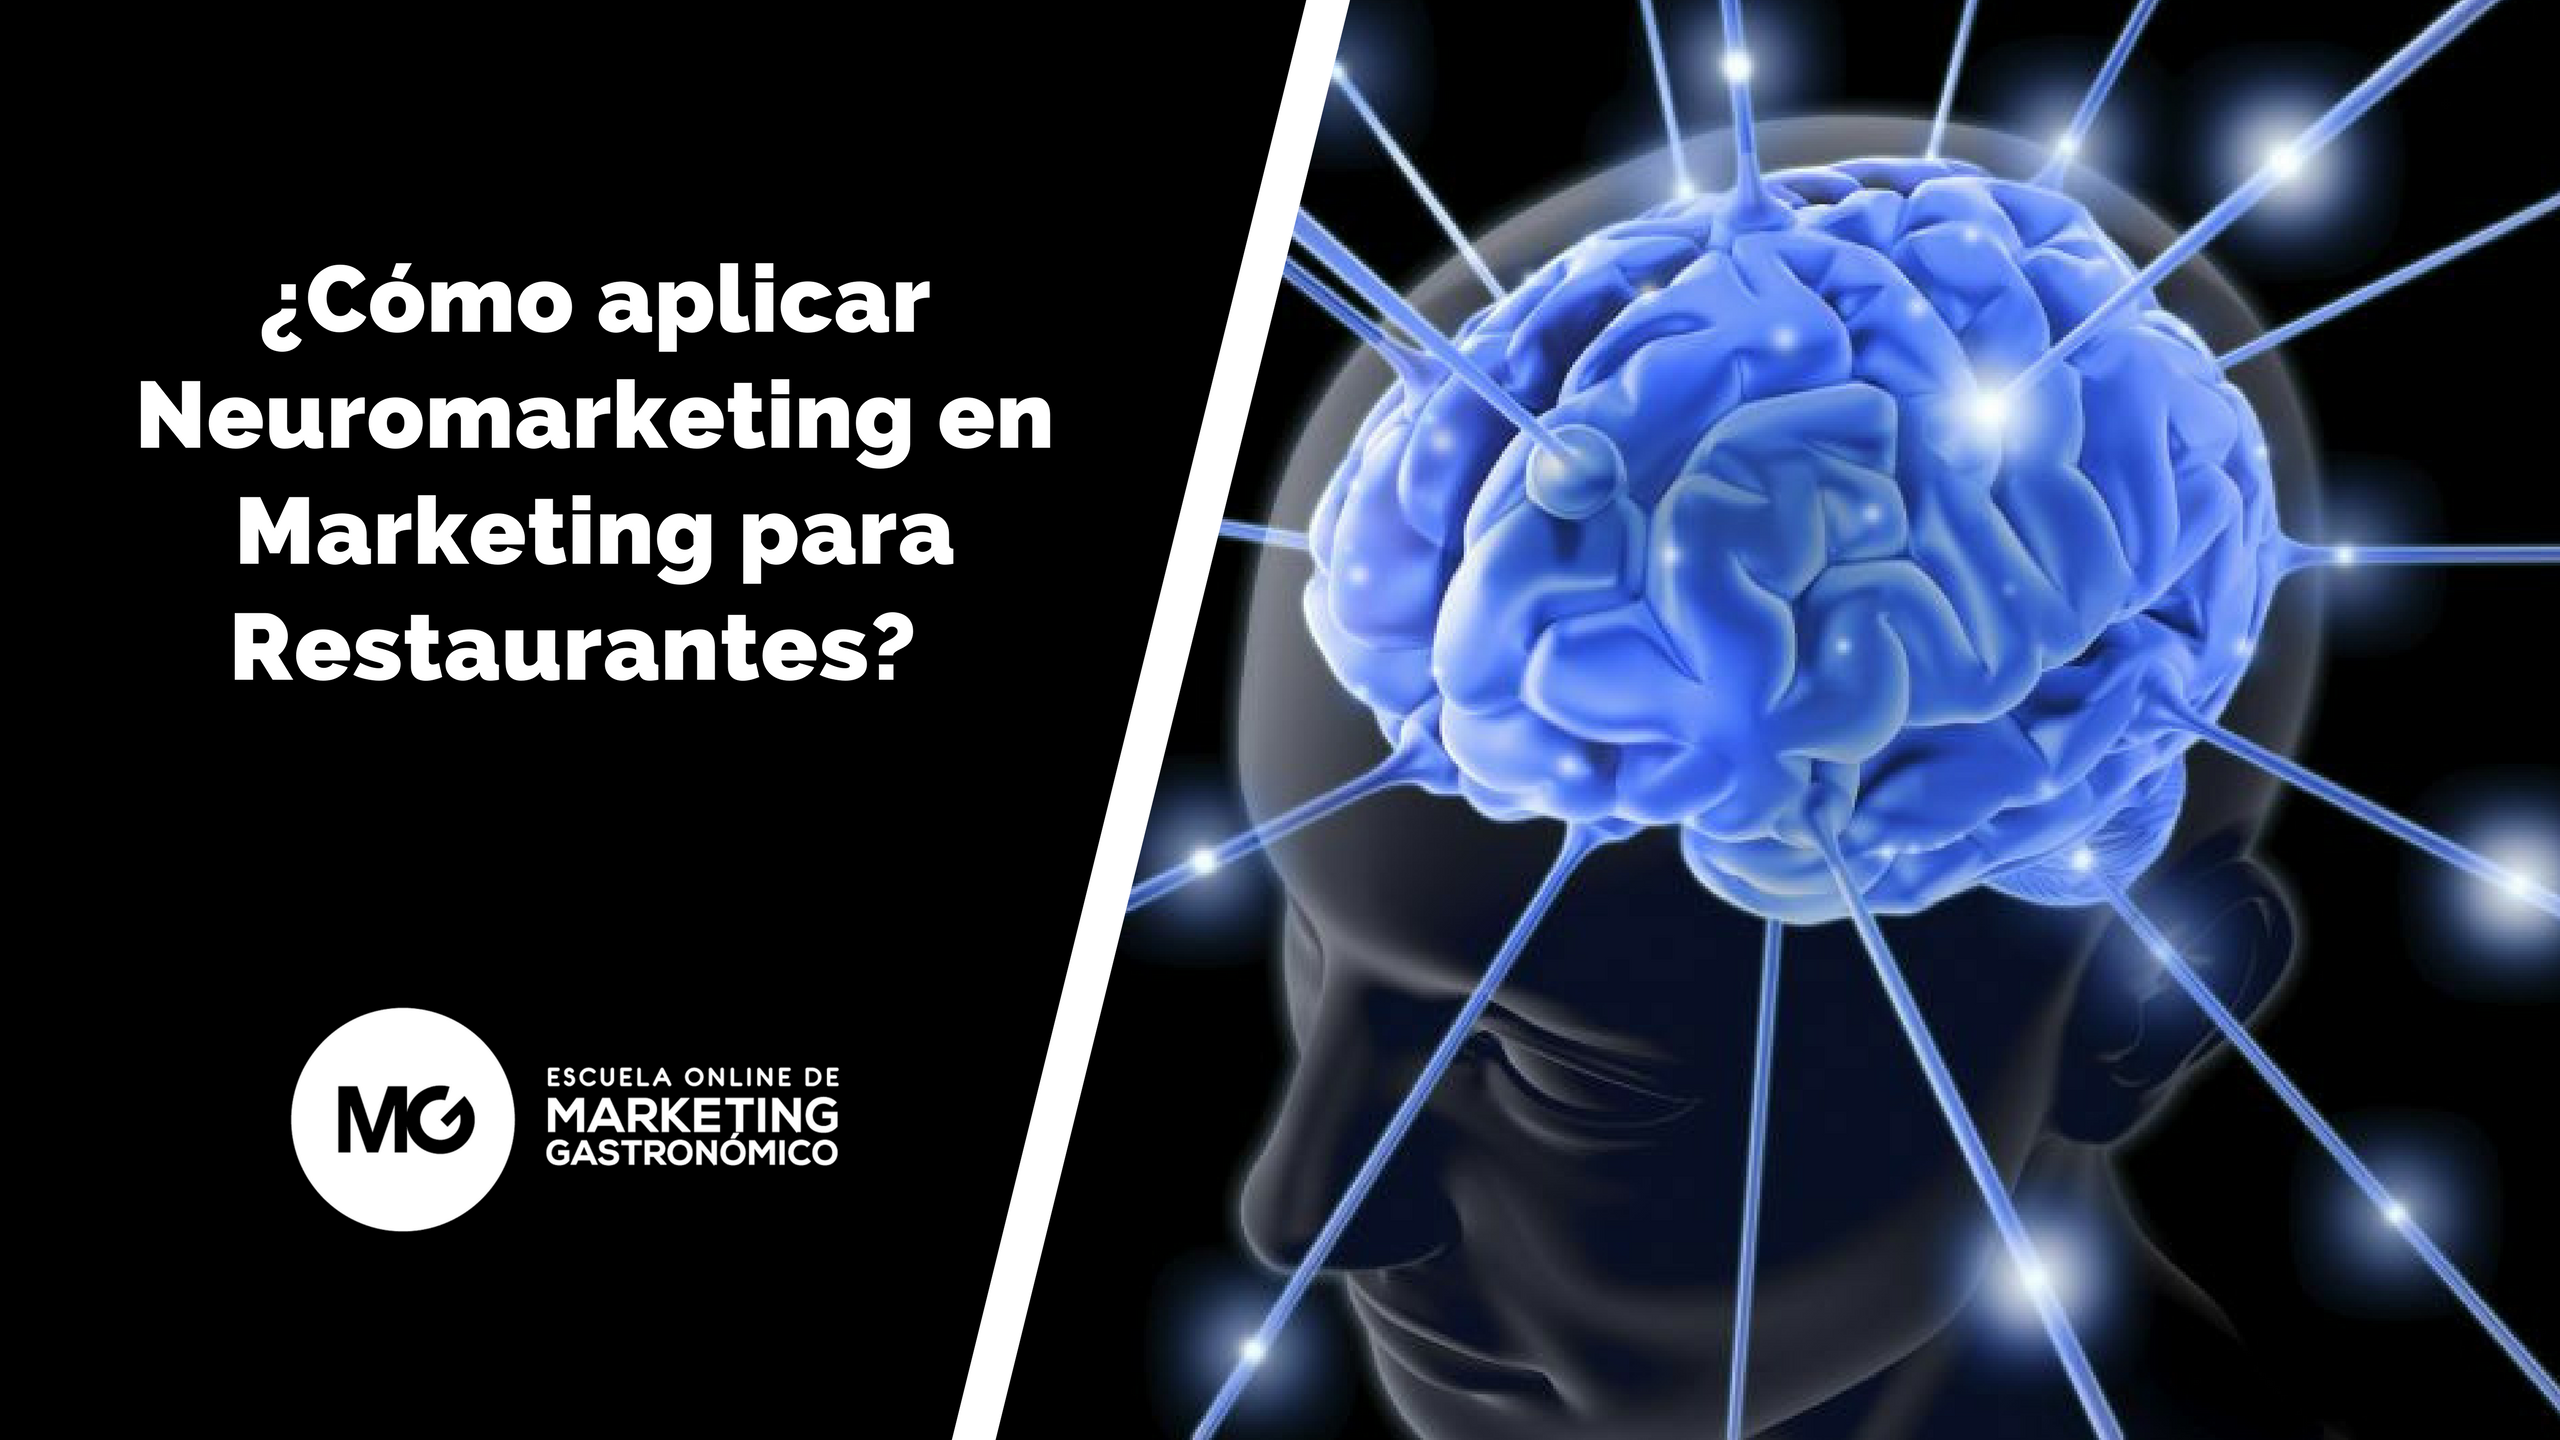 ¿Cómo aplicar Neuromarketing en Marketing para Restaurantes?